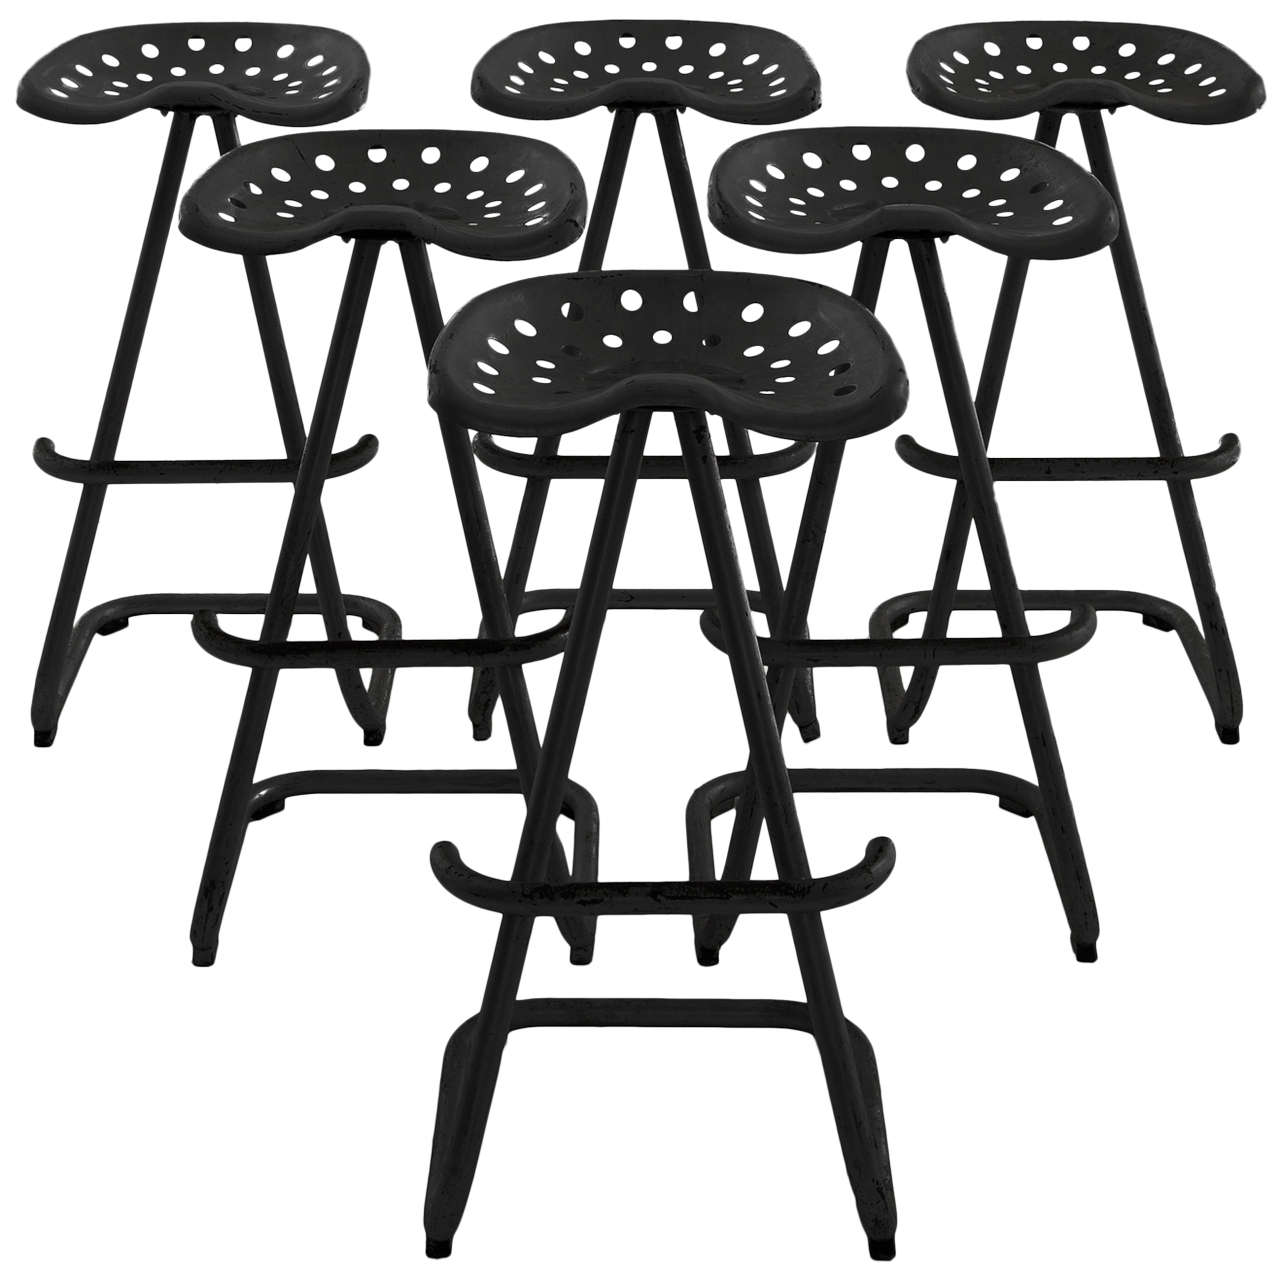 Large quantity of tractor seat stools at 1stdibs for Art 1576 cc